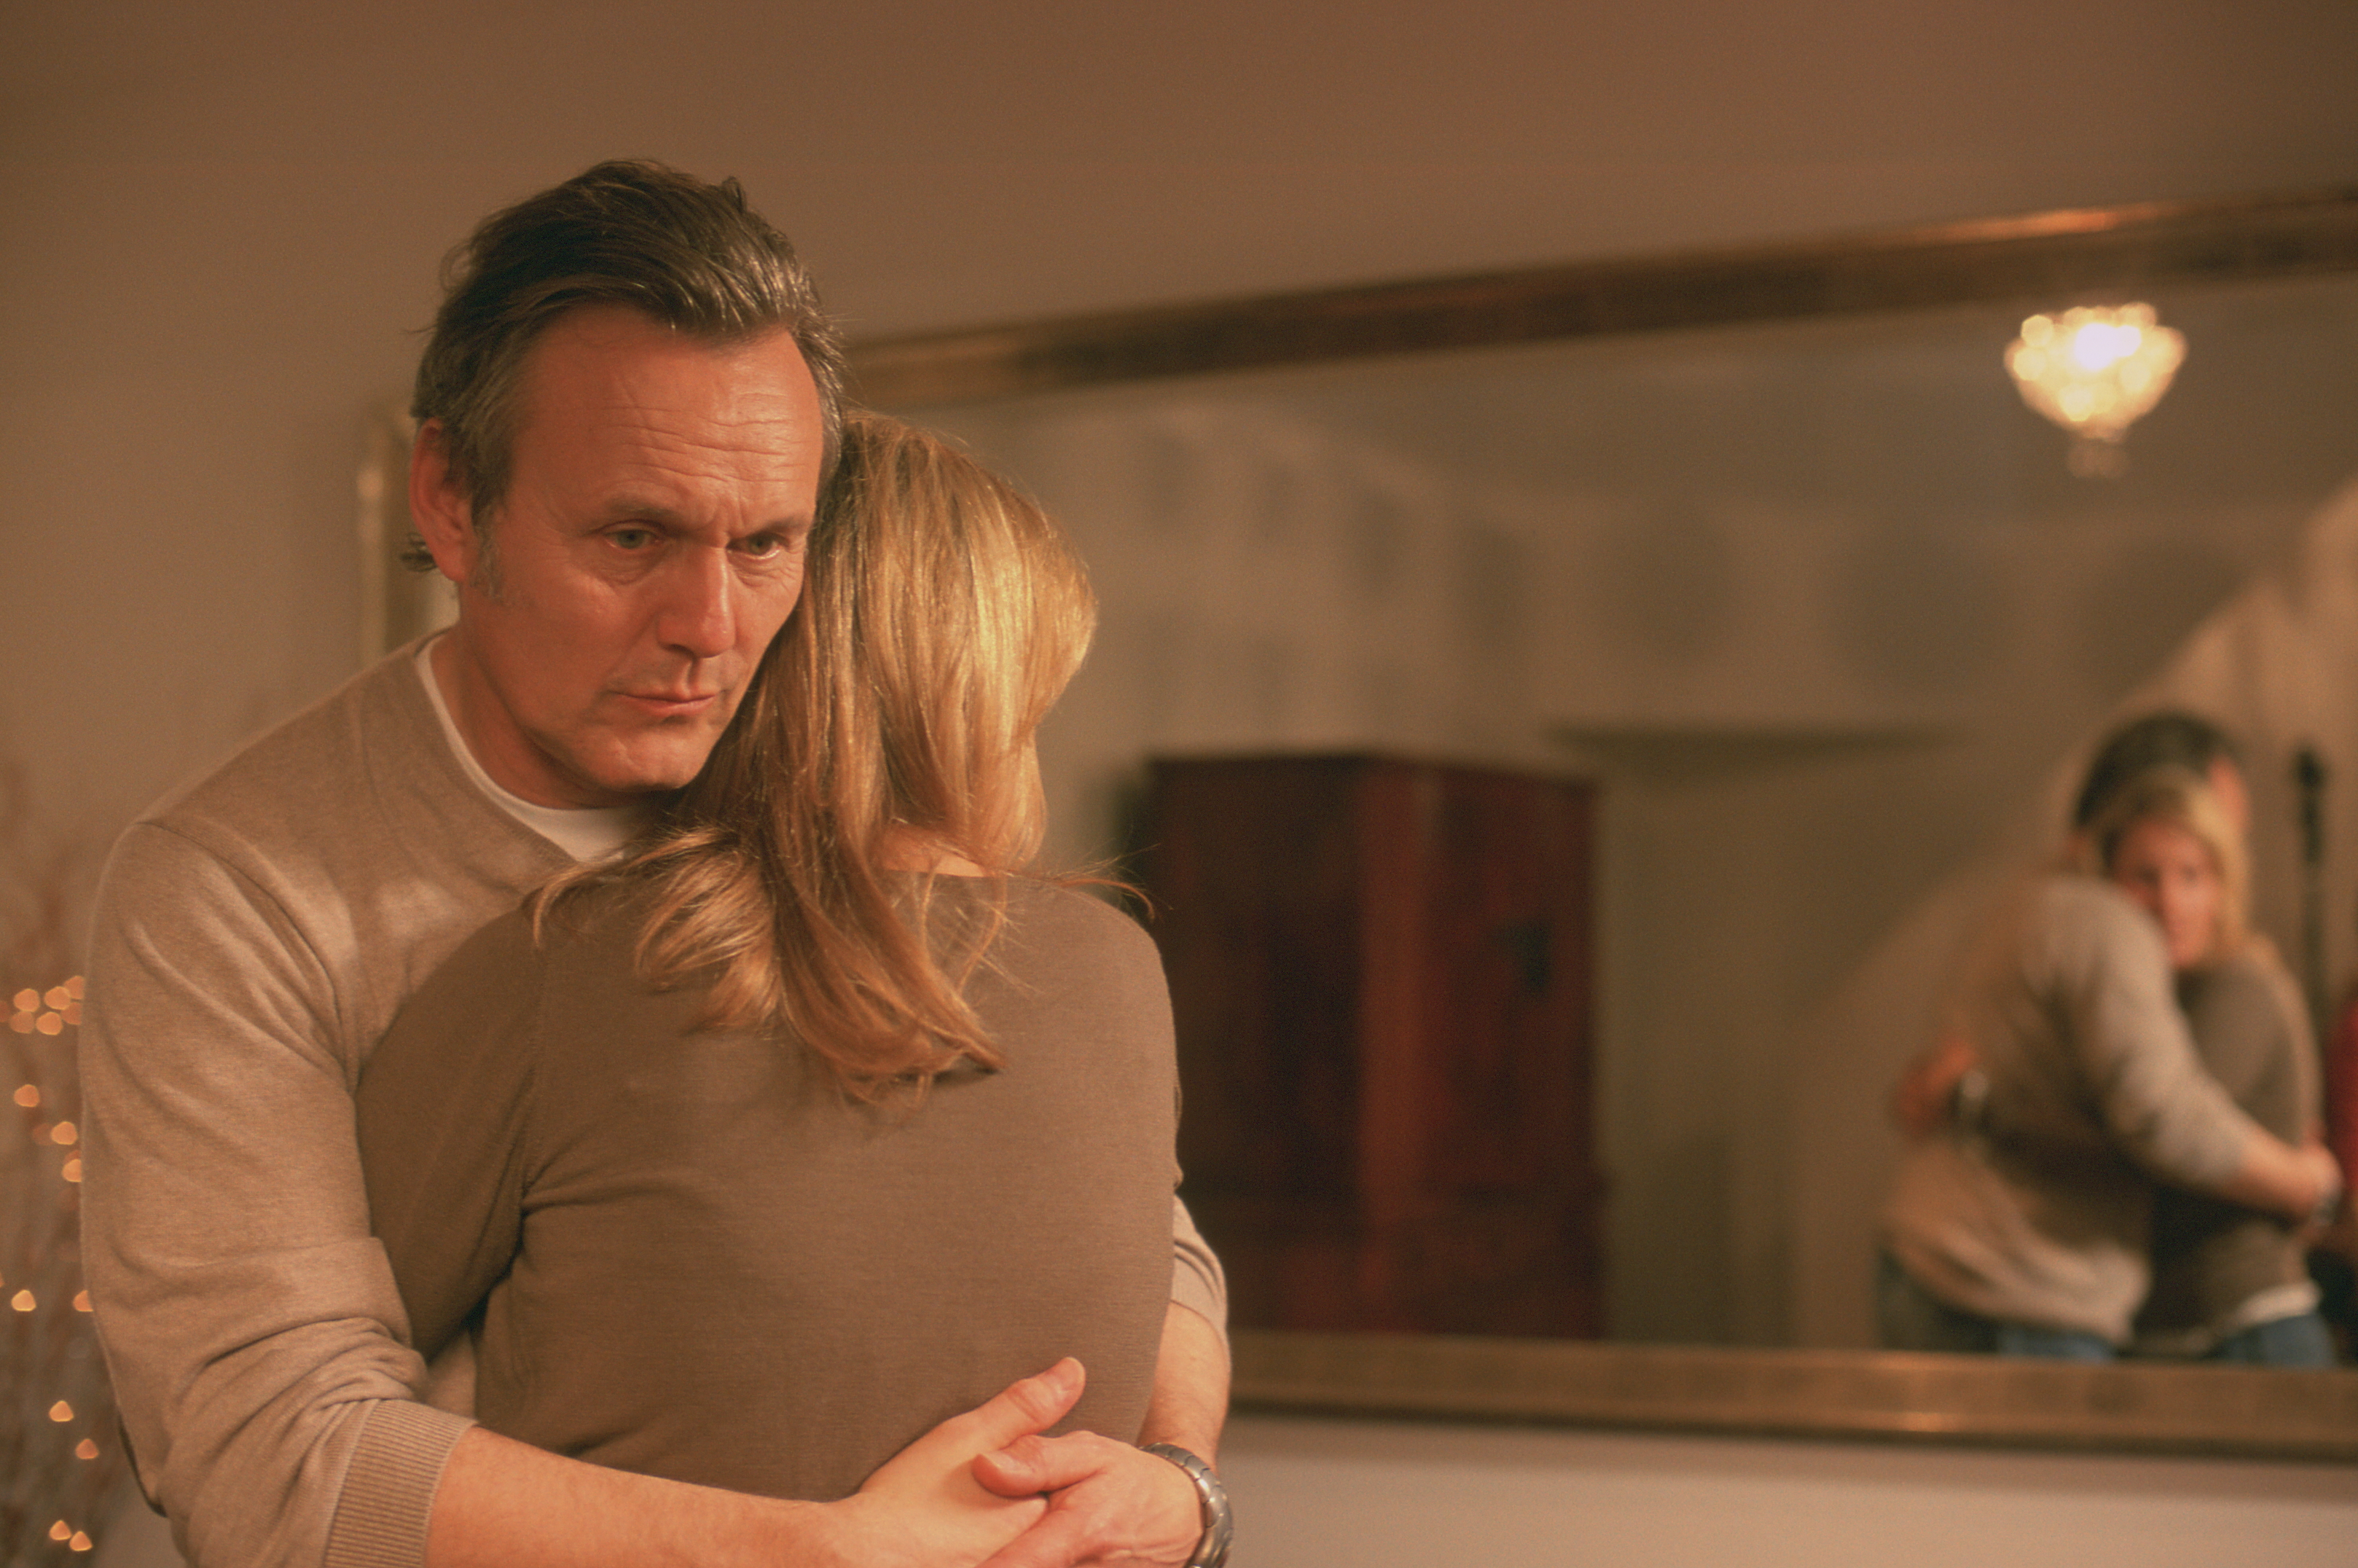 Daniel Cormack Actaeon Films Amelia Michael Anthony Head Natasha Powell